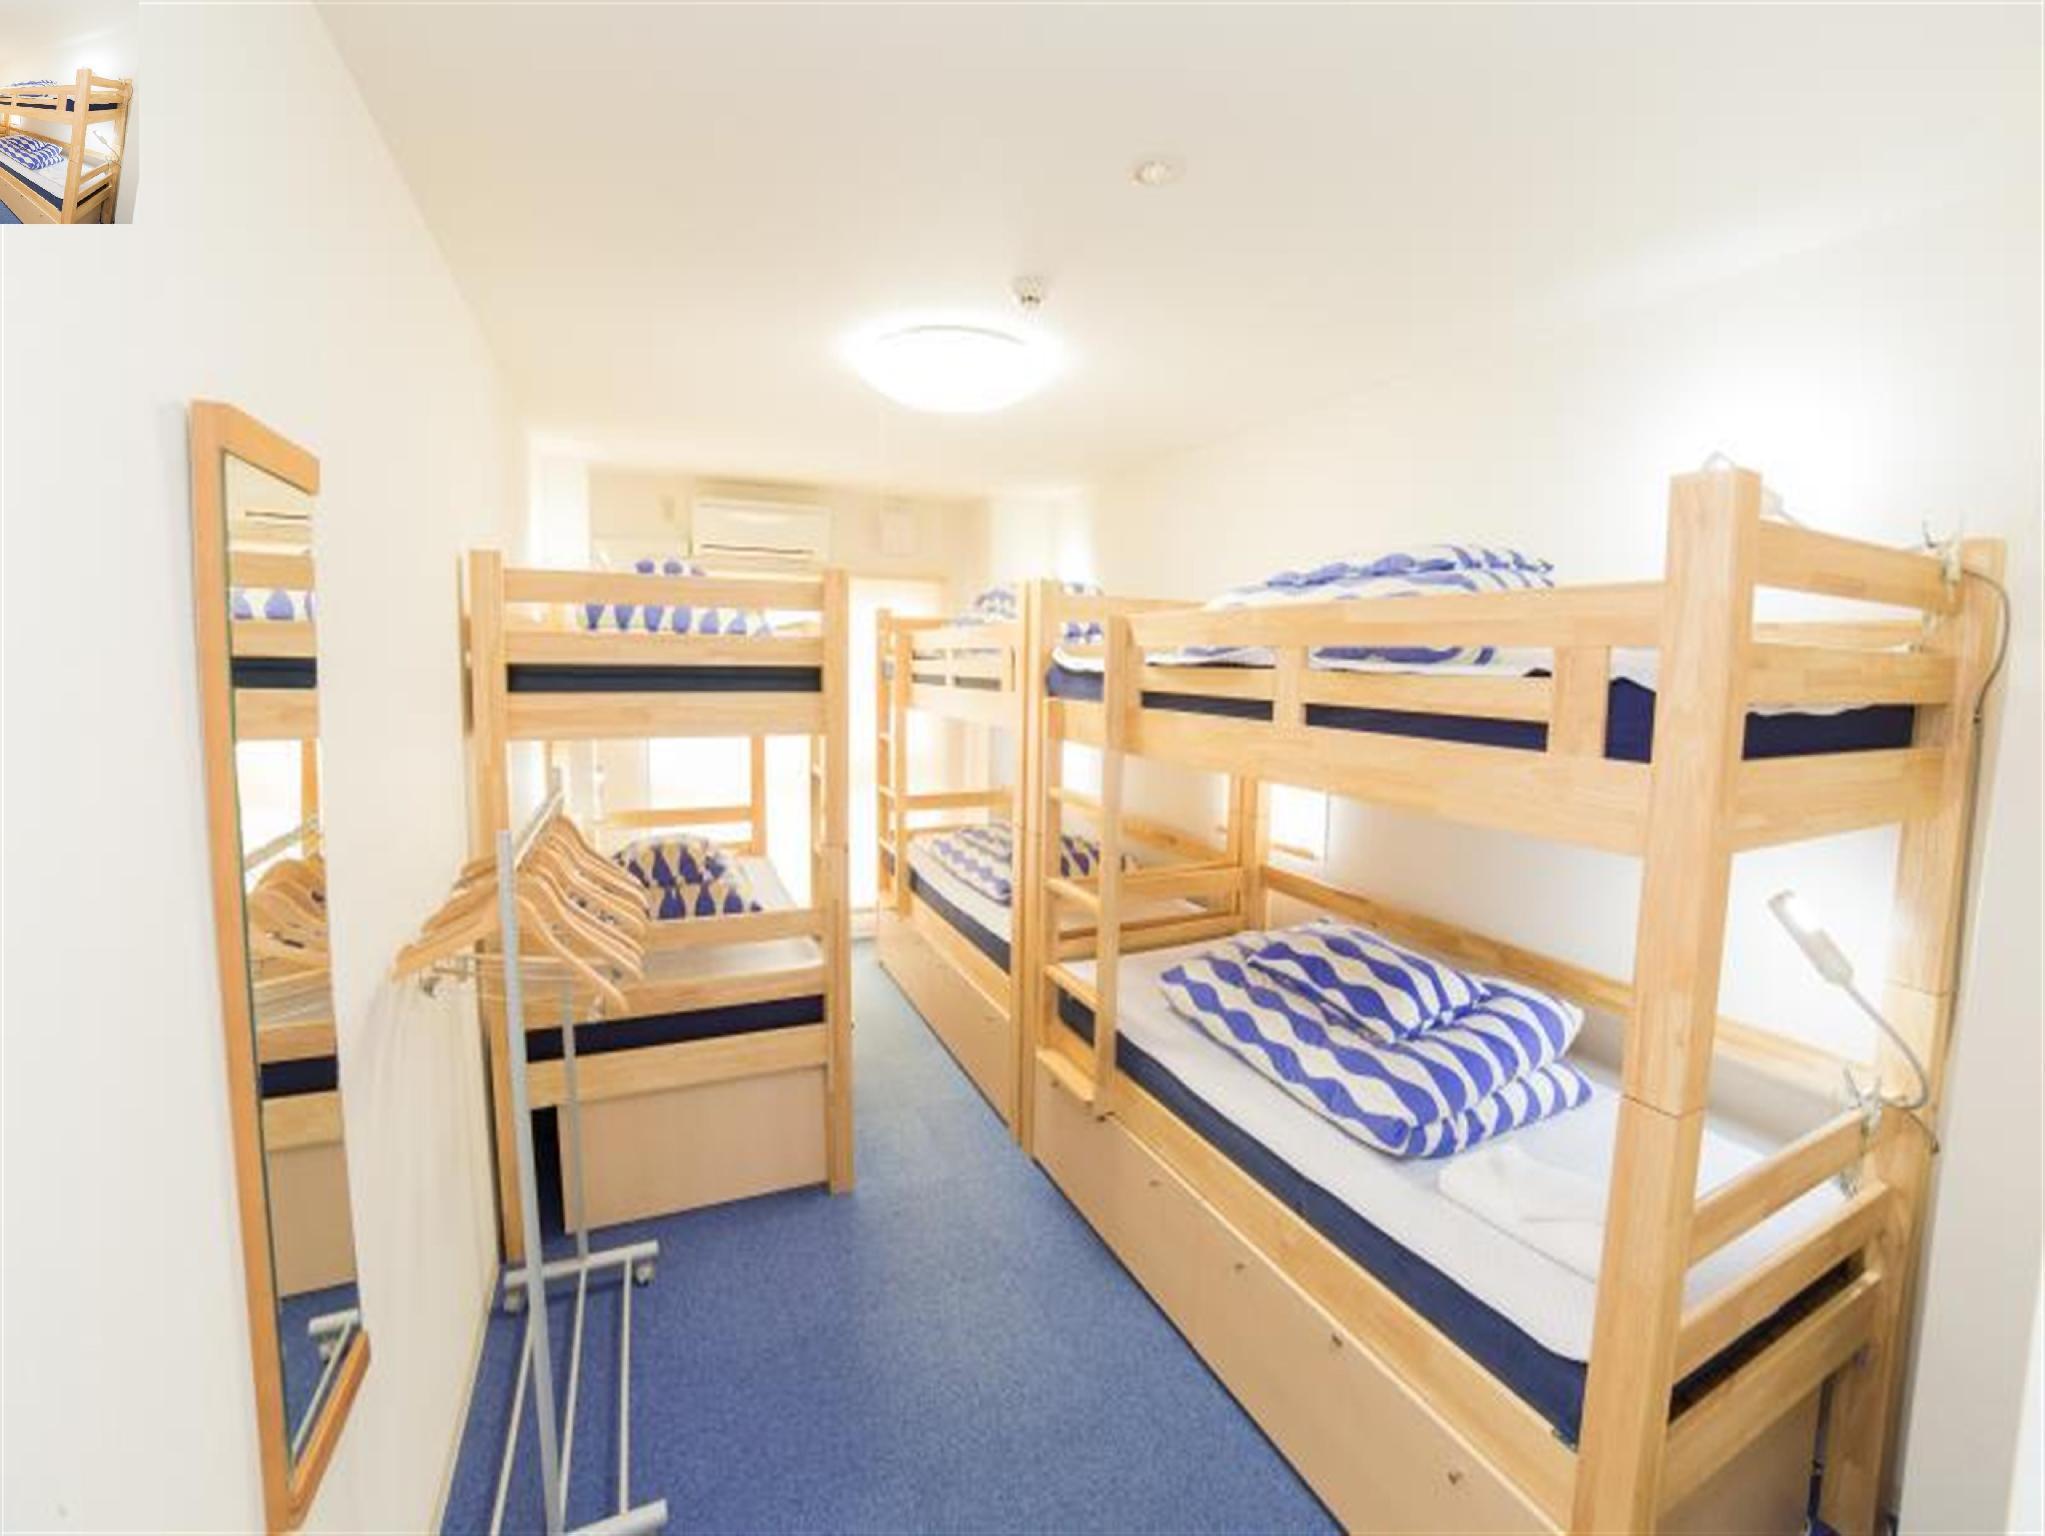 6-Bed Dormitory (Female)